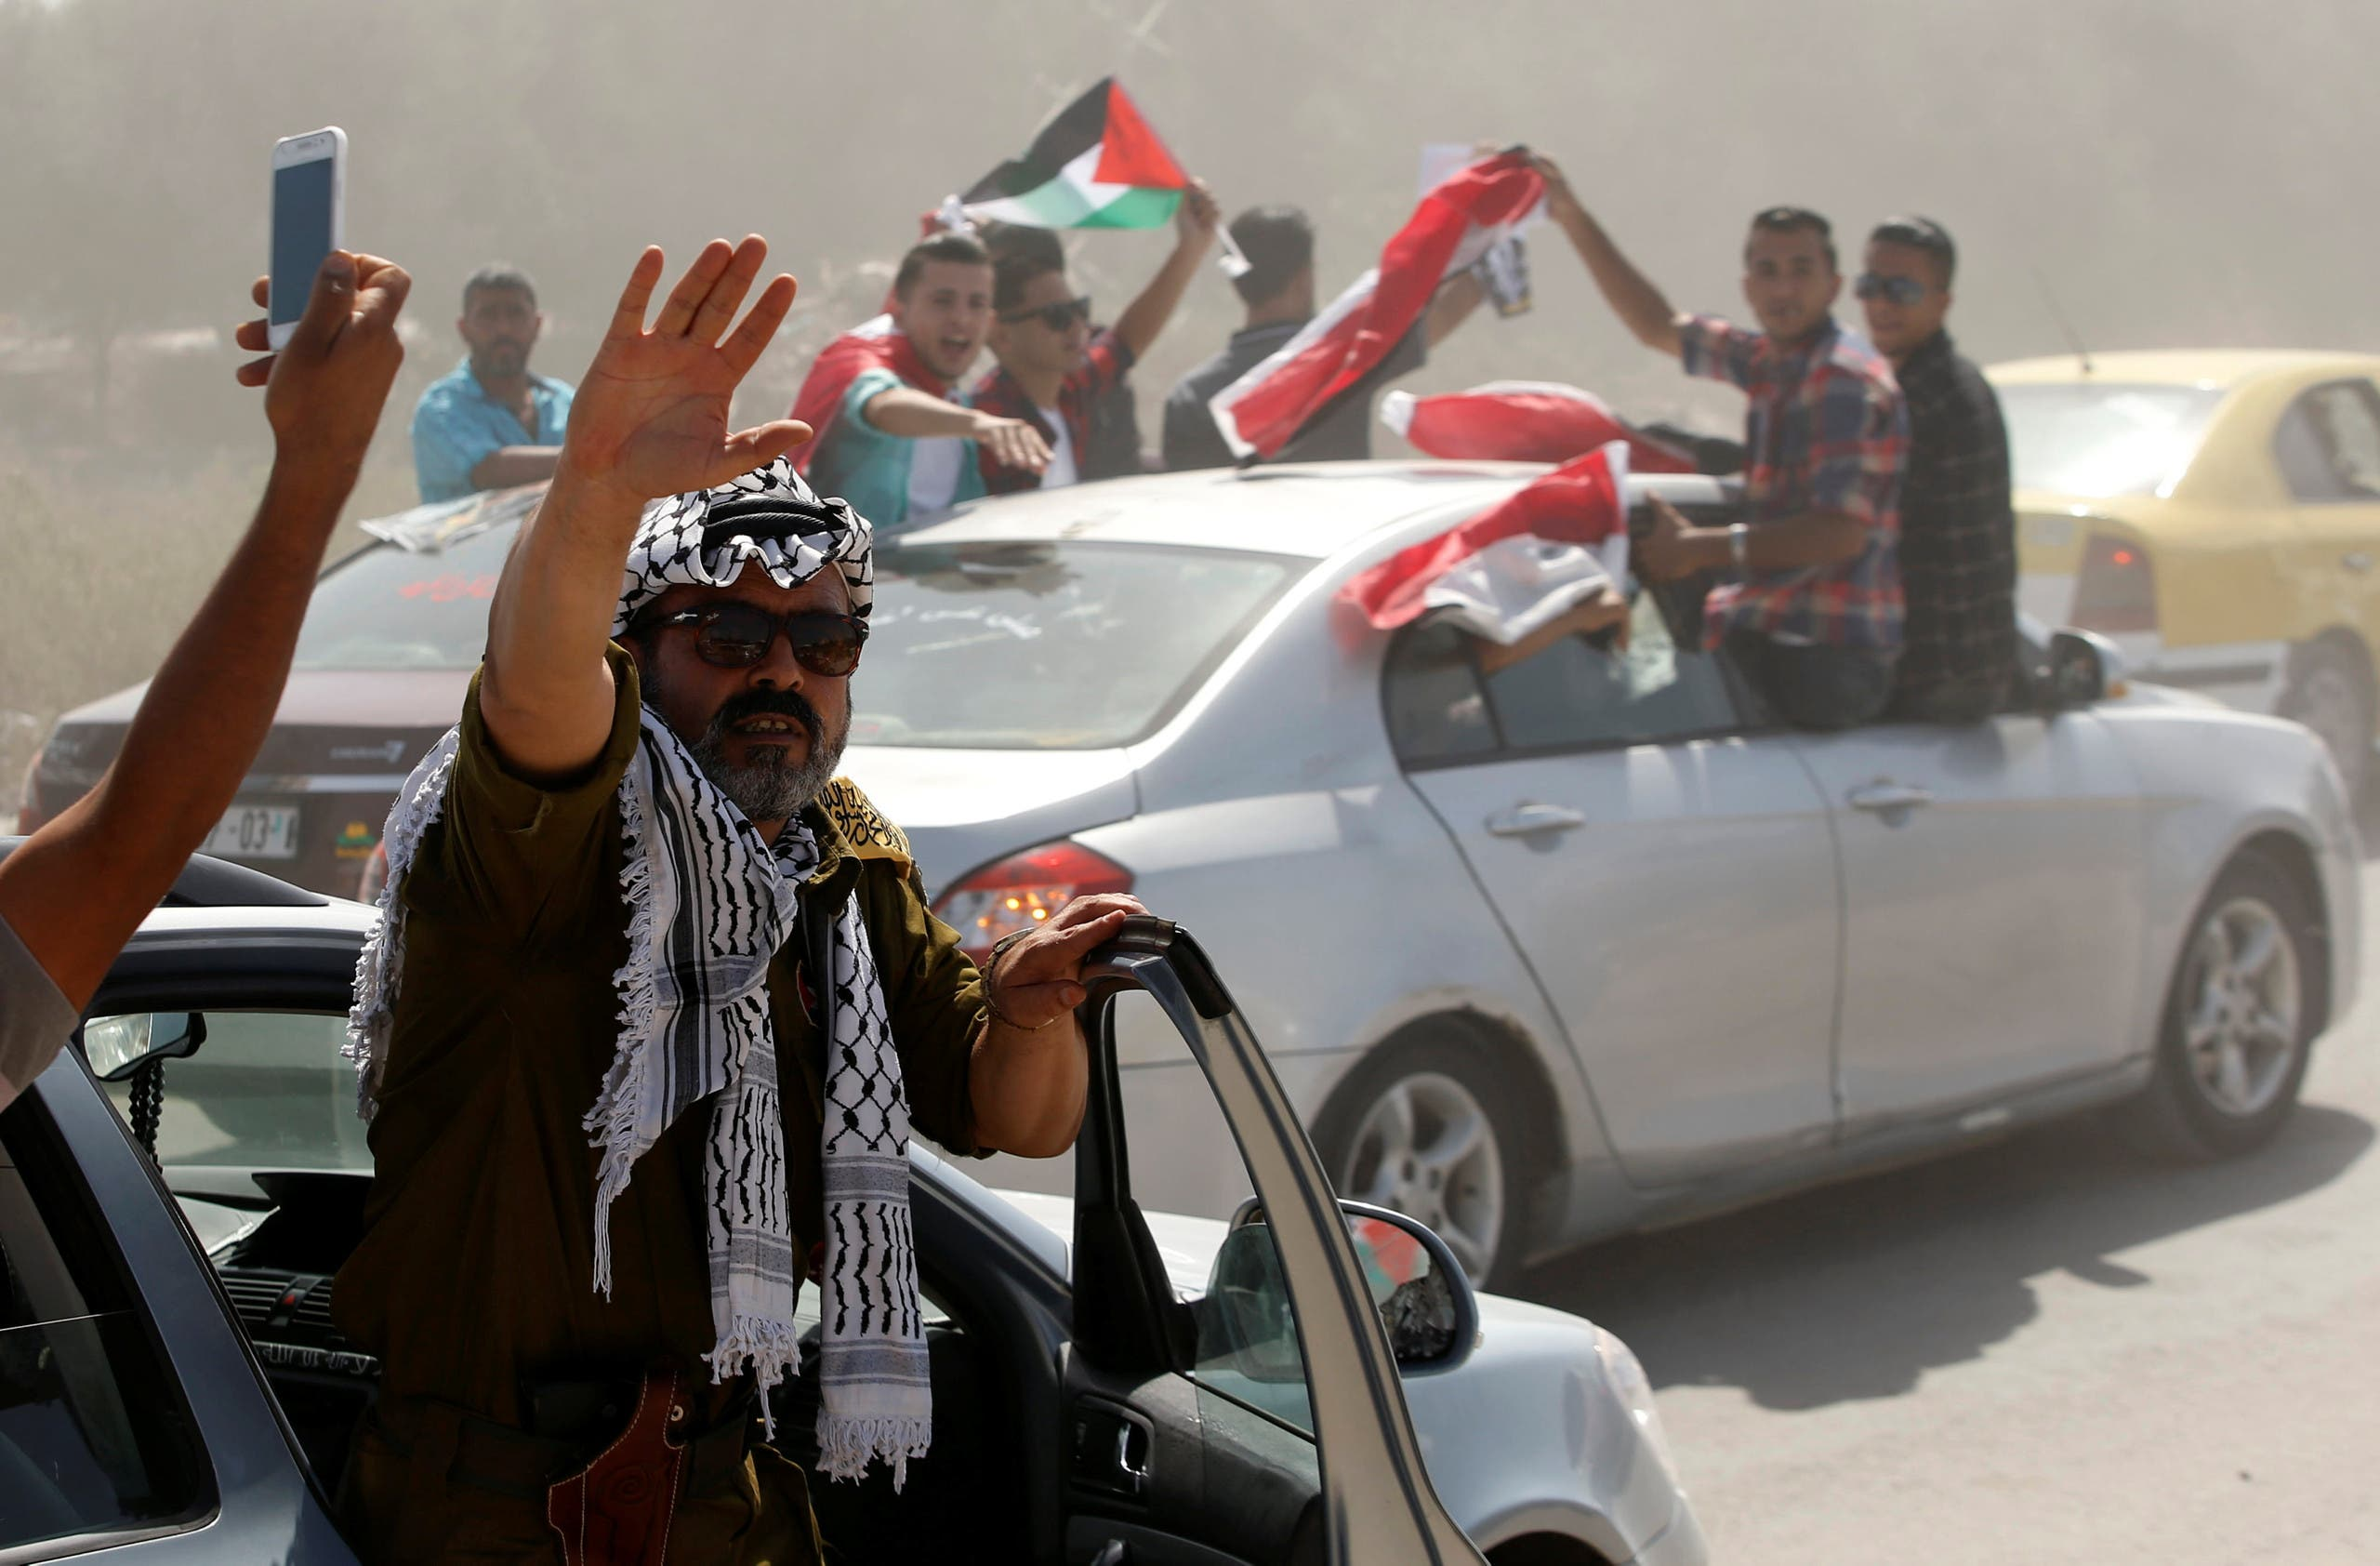 Palestinian rivals reconcile after decade-long divide